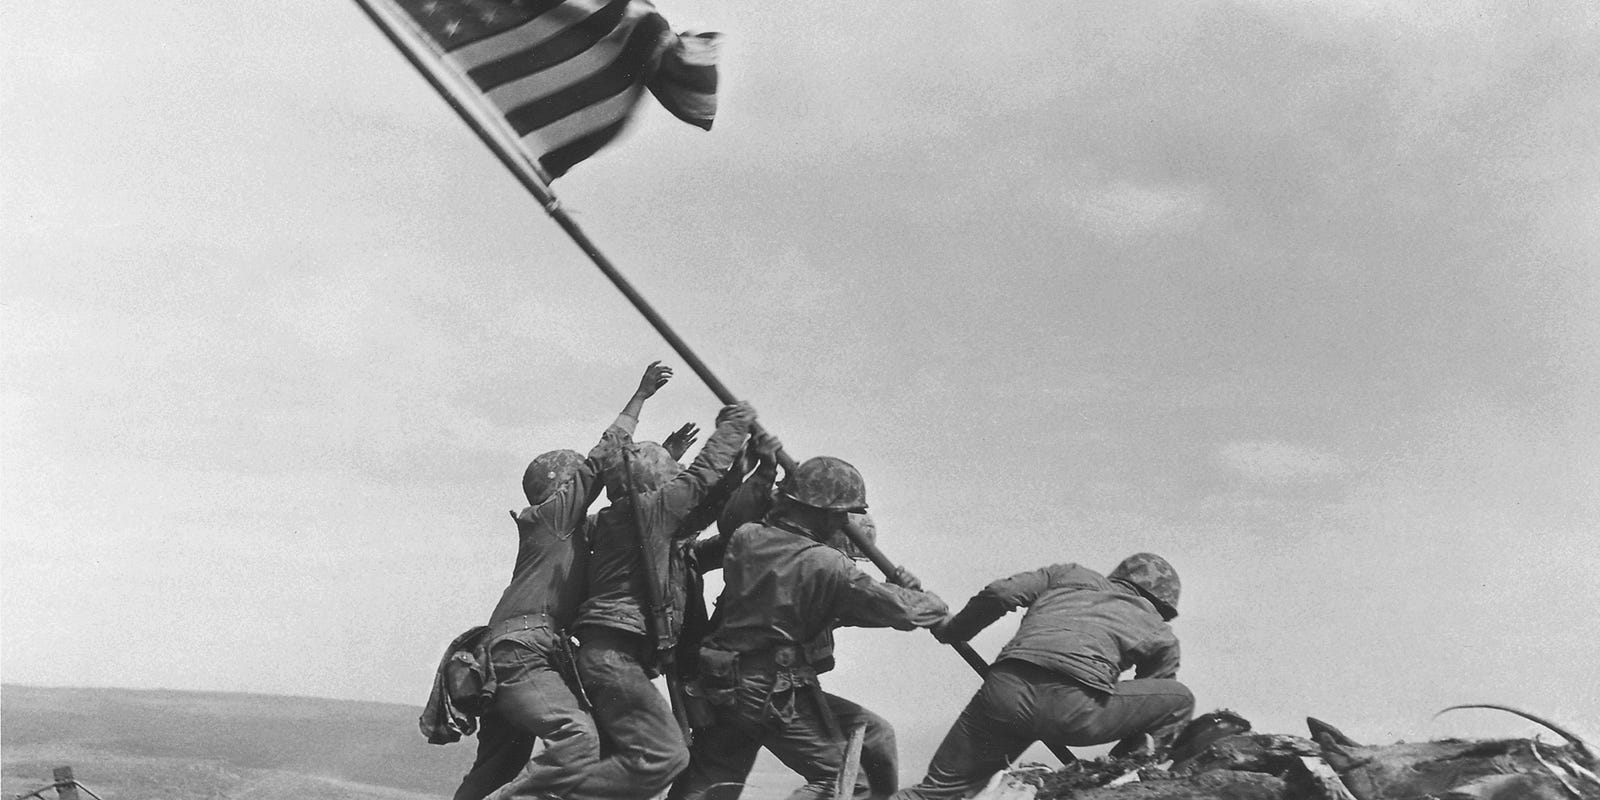 Opinion: It's been 75 years since US flag flew over Iwo Jima